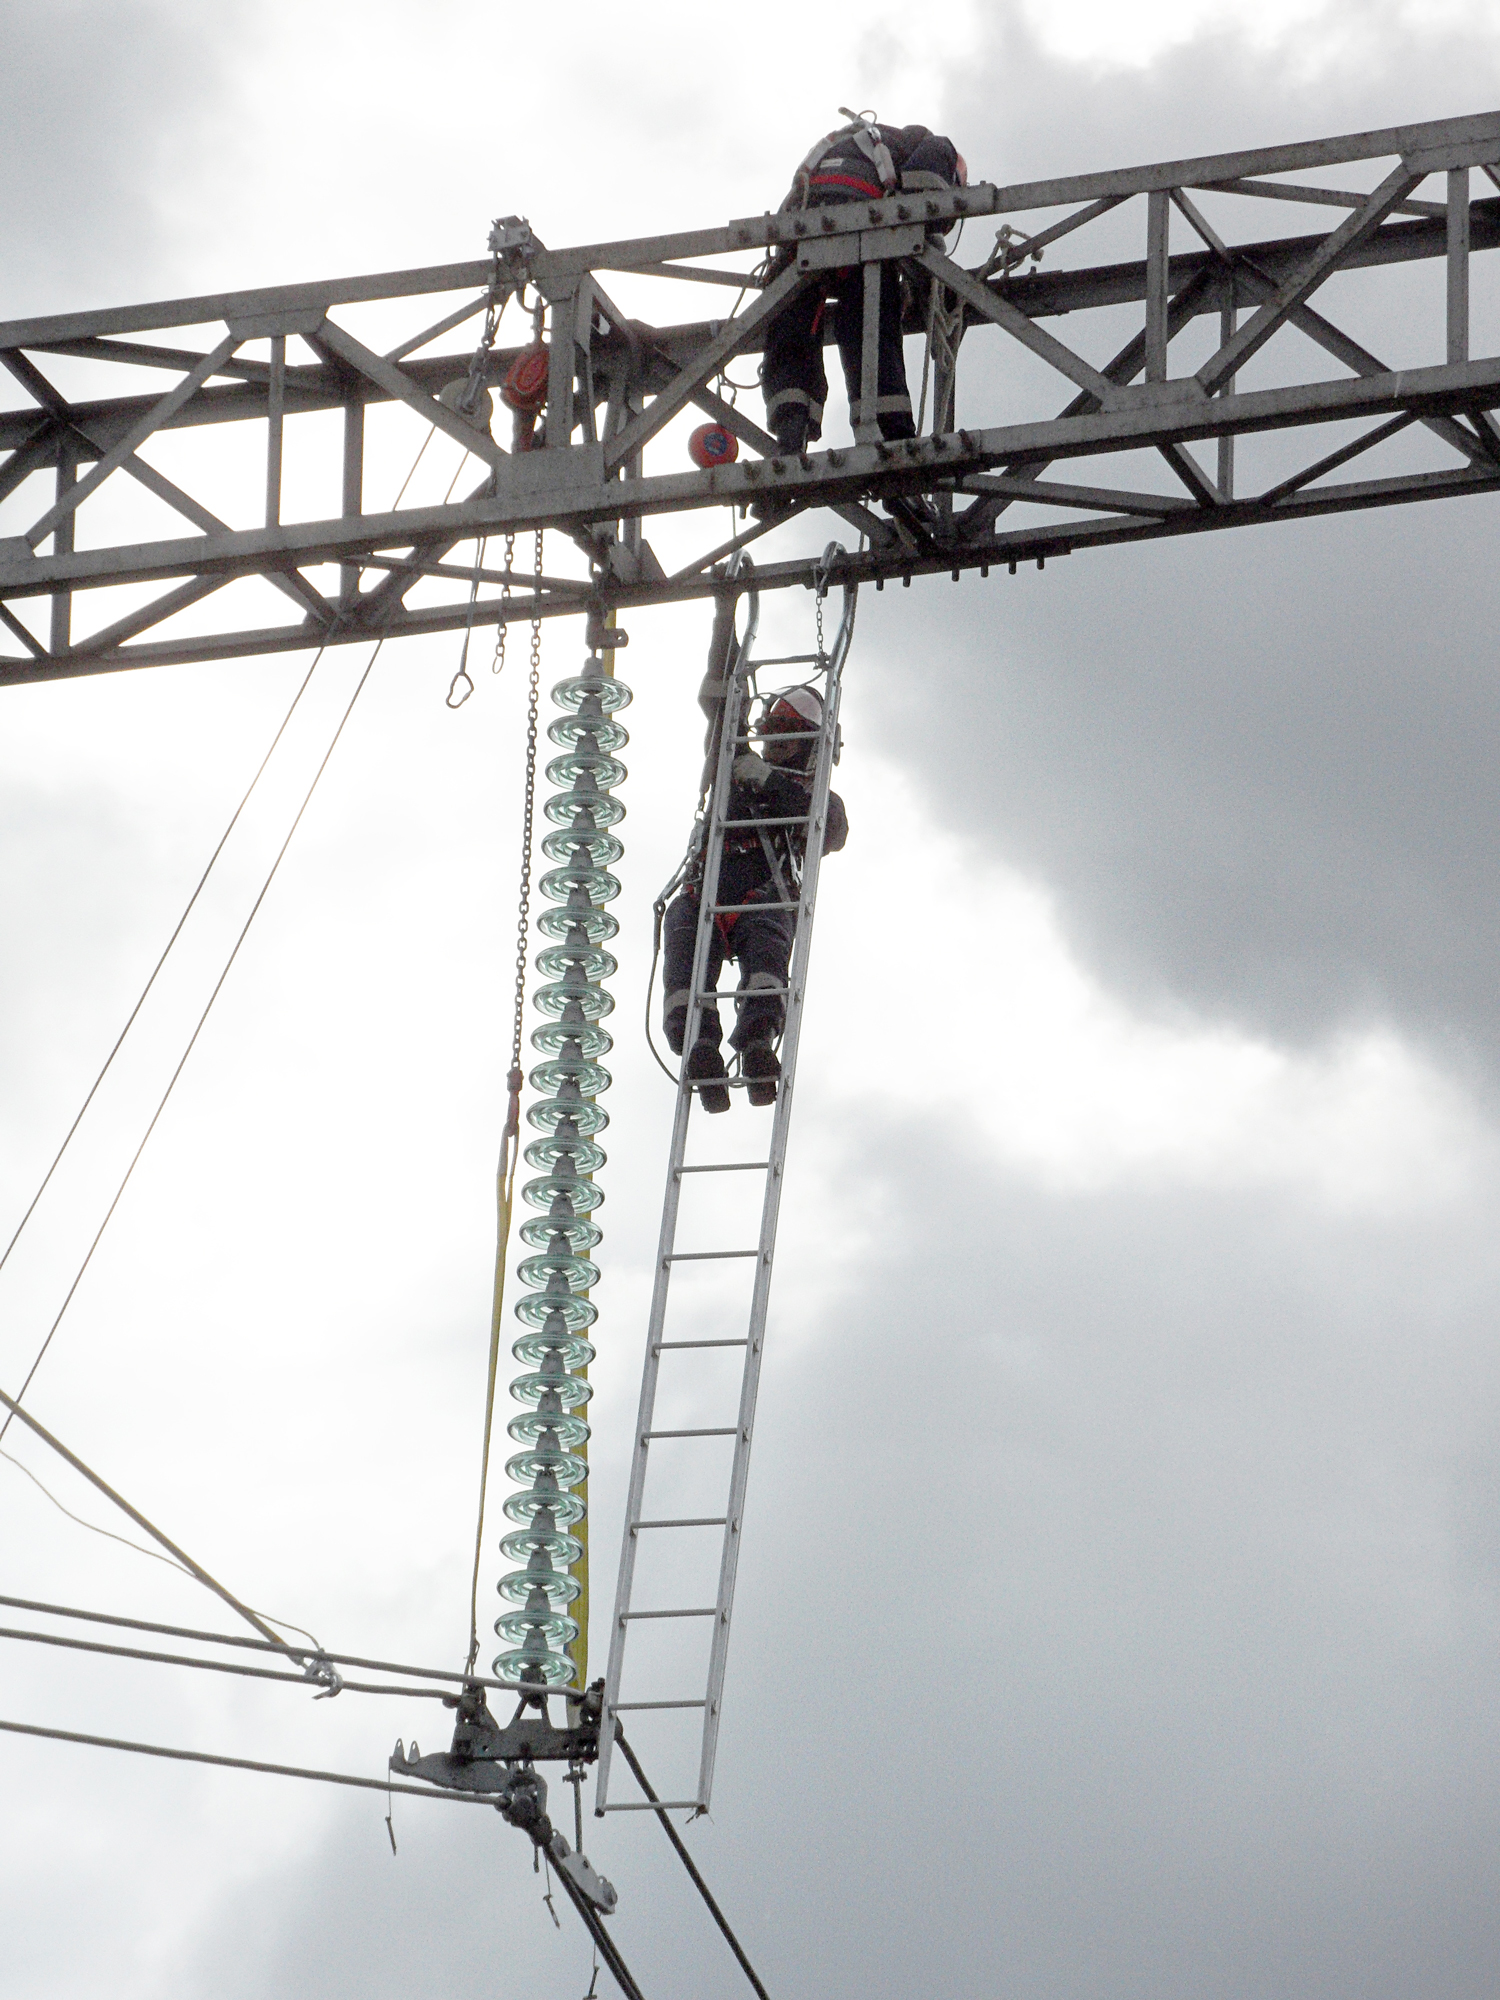 Top Safety guaranteed by Tesmec Aluminium Structures for Stringing operations